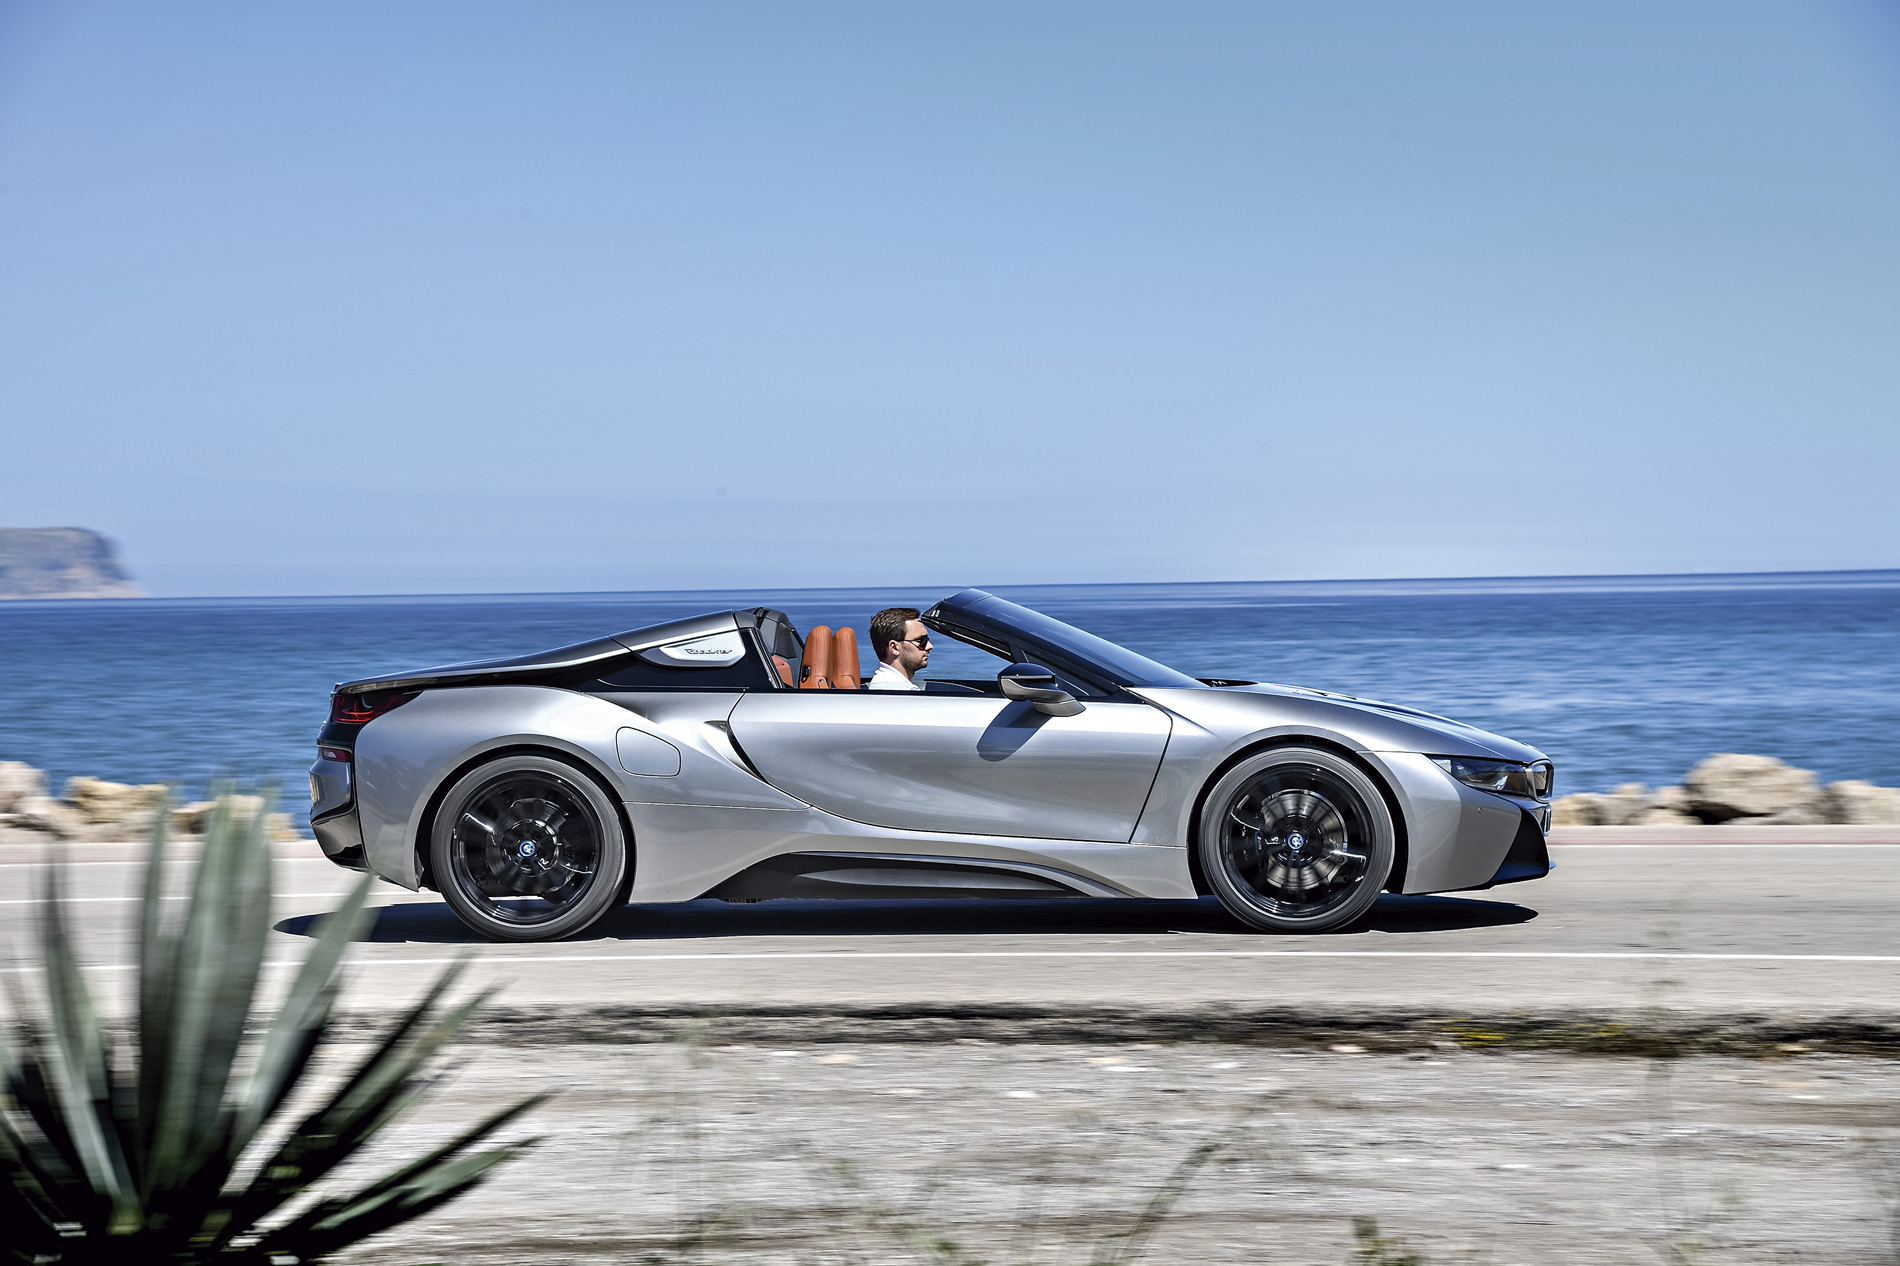 Bmw I8 Roadster O Hibrido Descapotavel Revista Rua